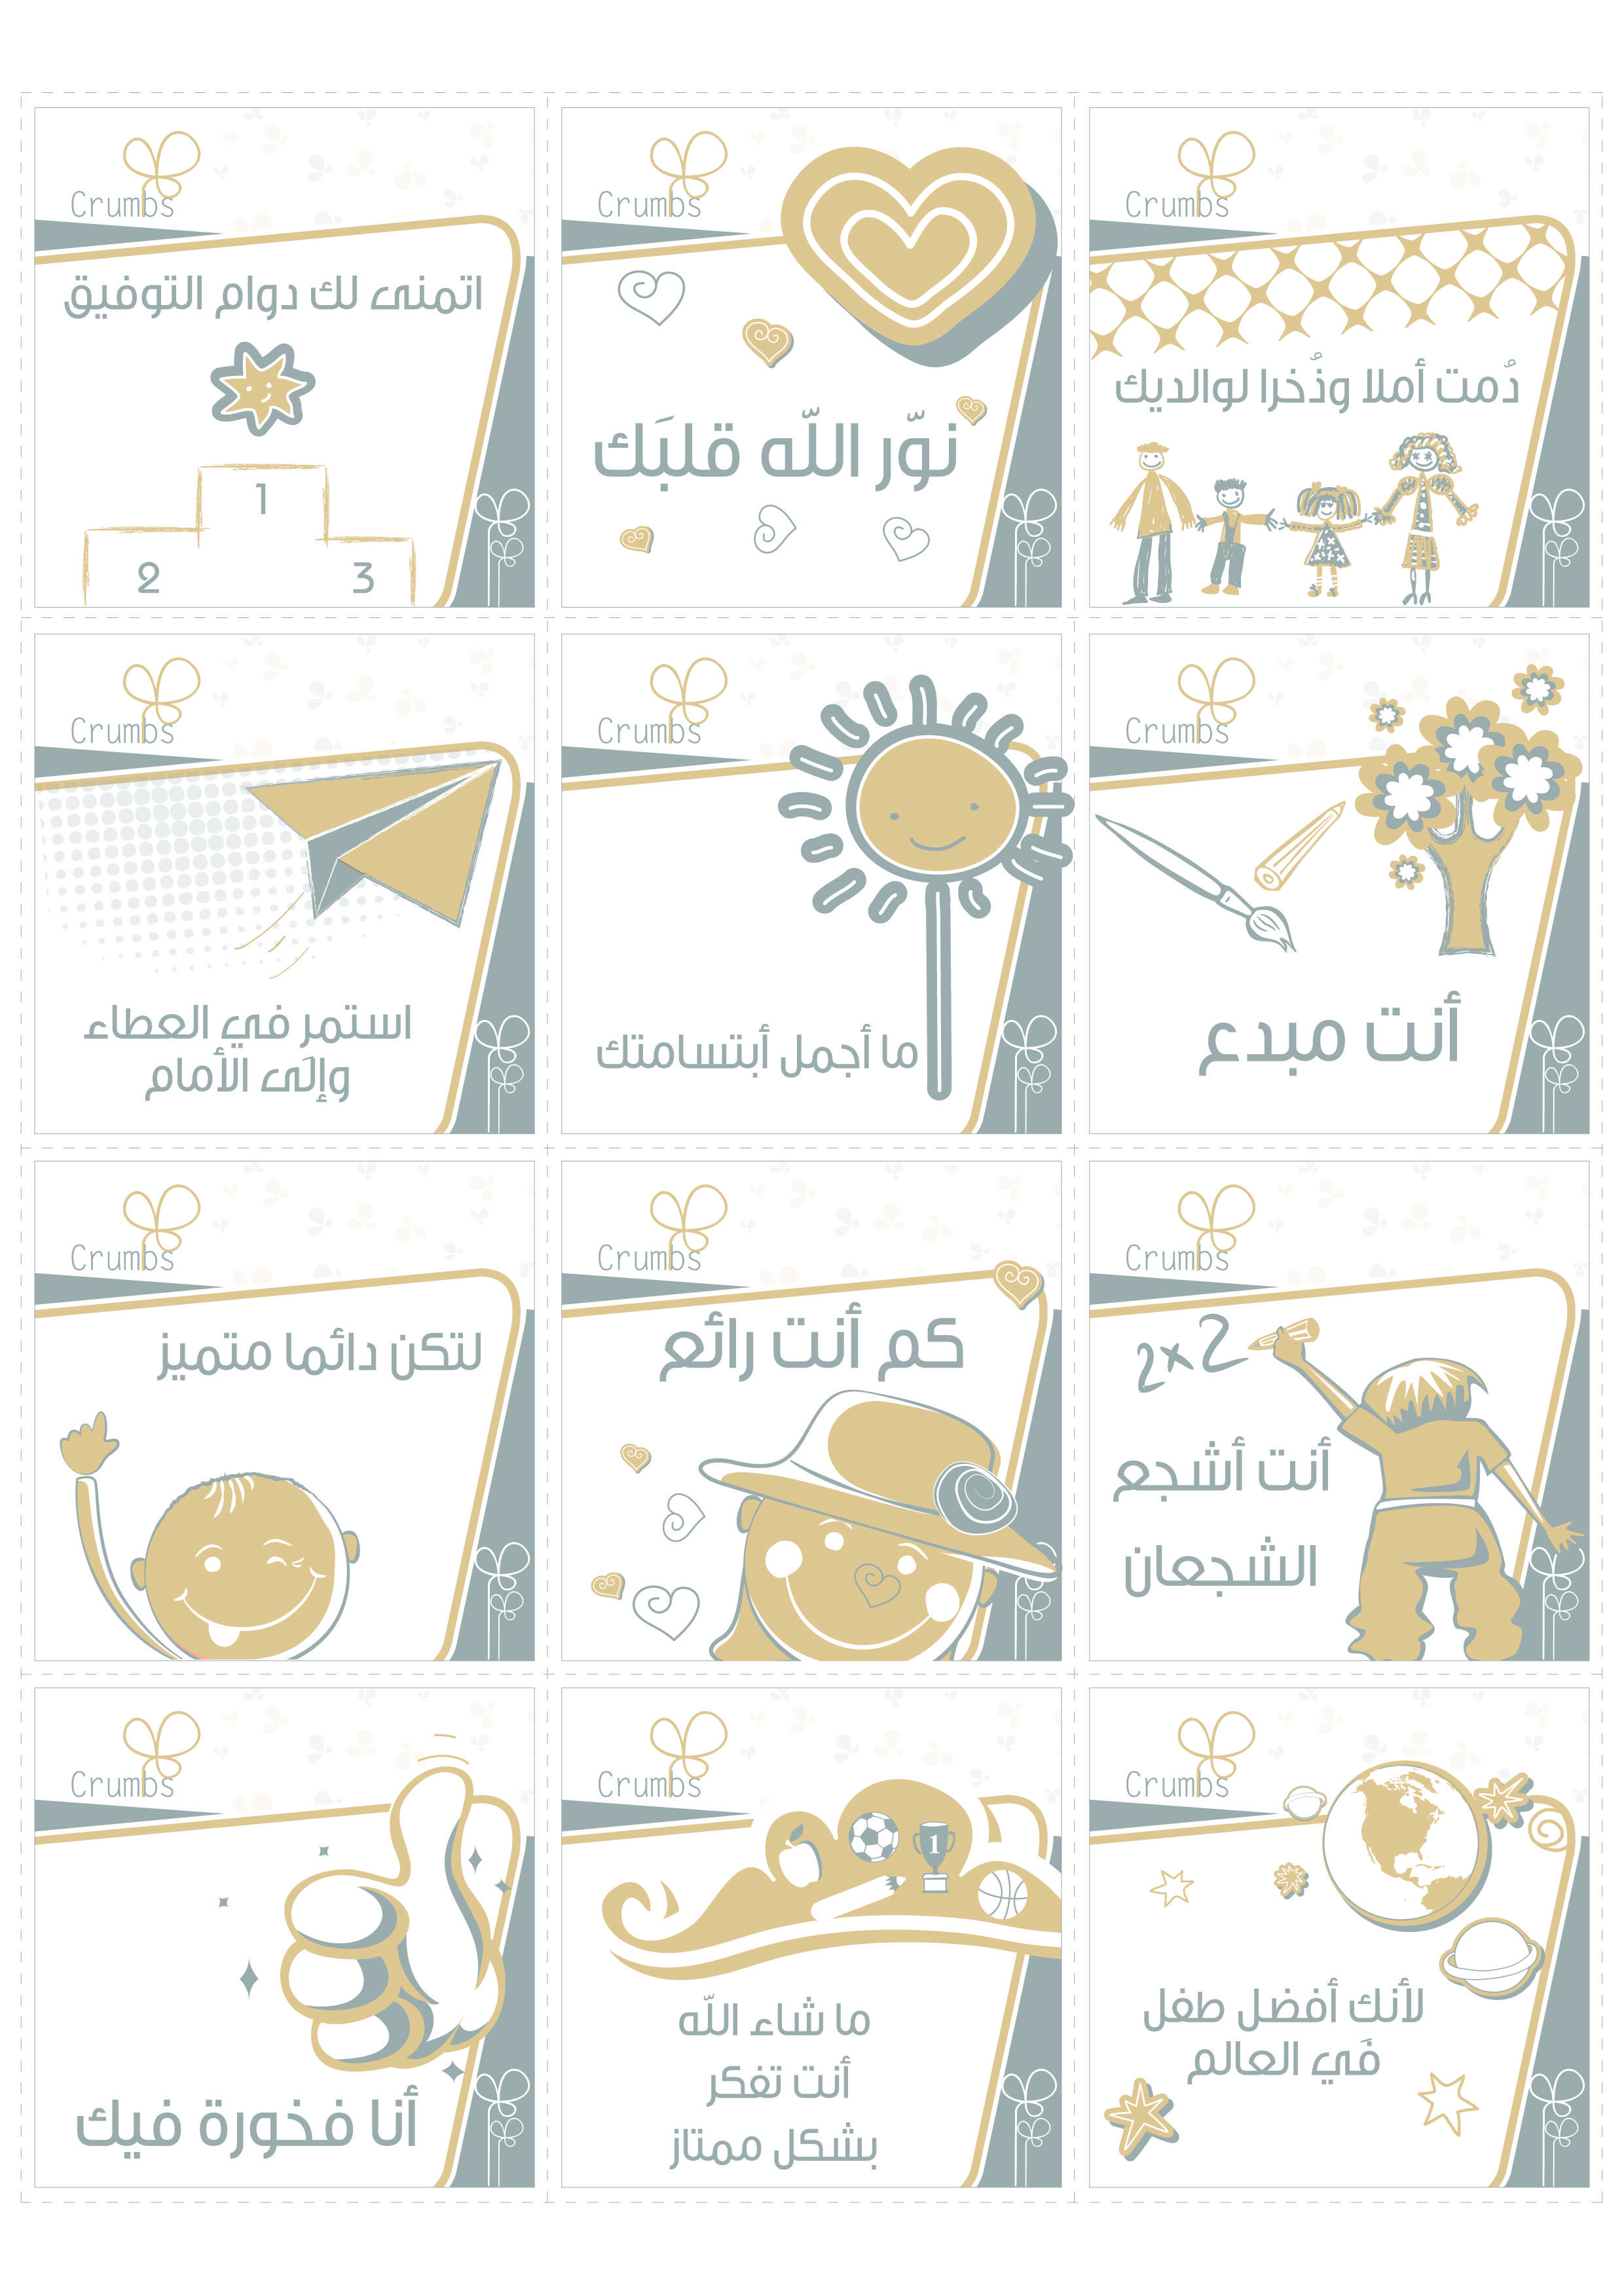 Free Printable Arabic Lunchbox Notes For A Boy Lunch Box Notes Social Skills Autism Islam For Kids